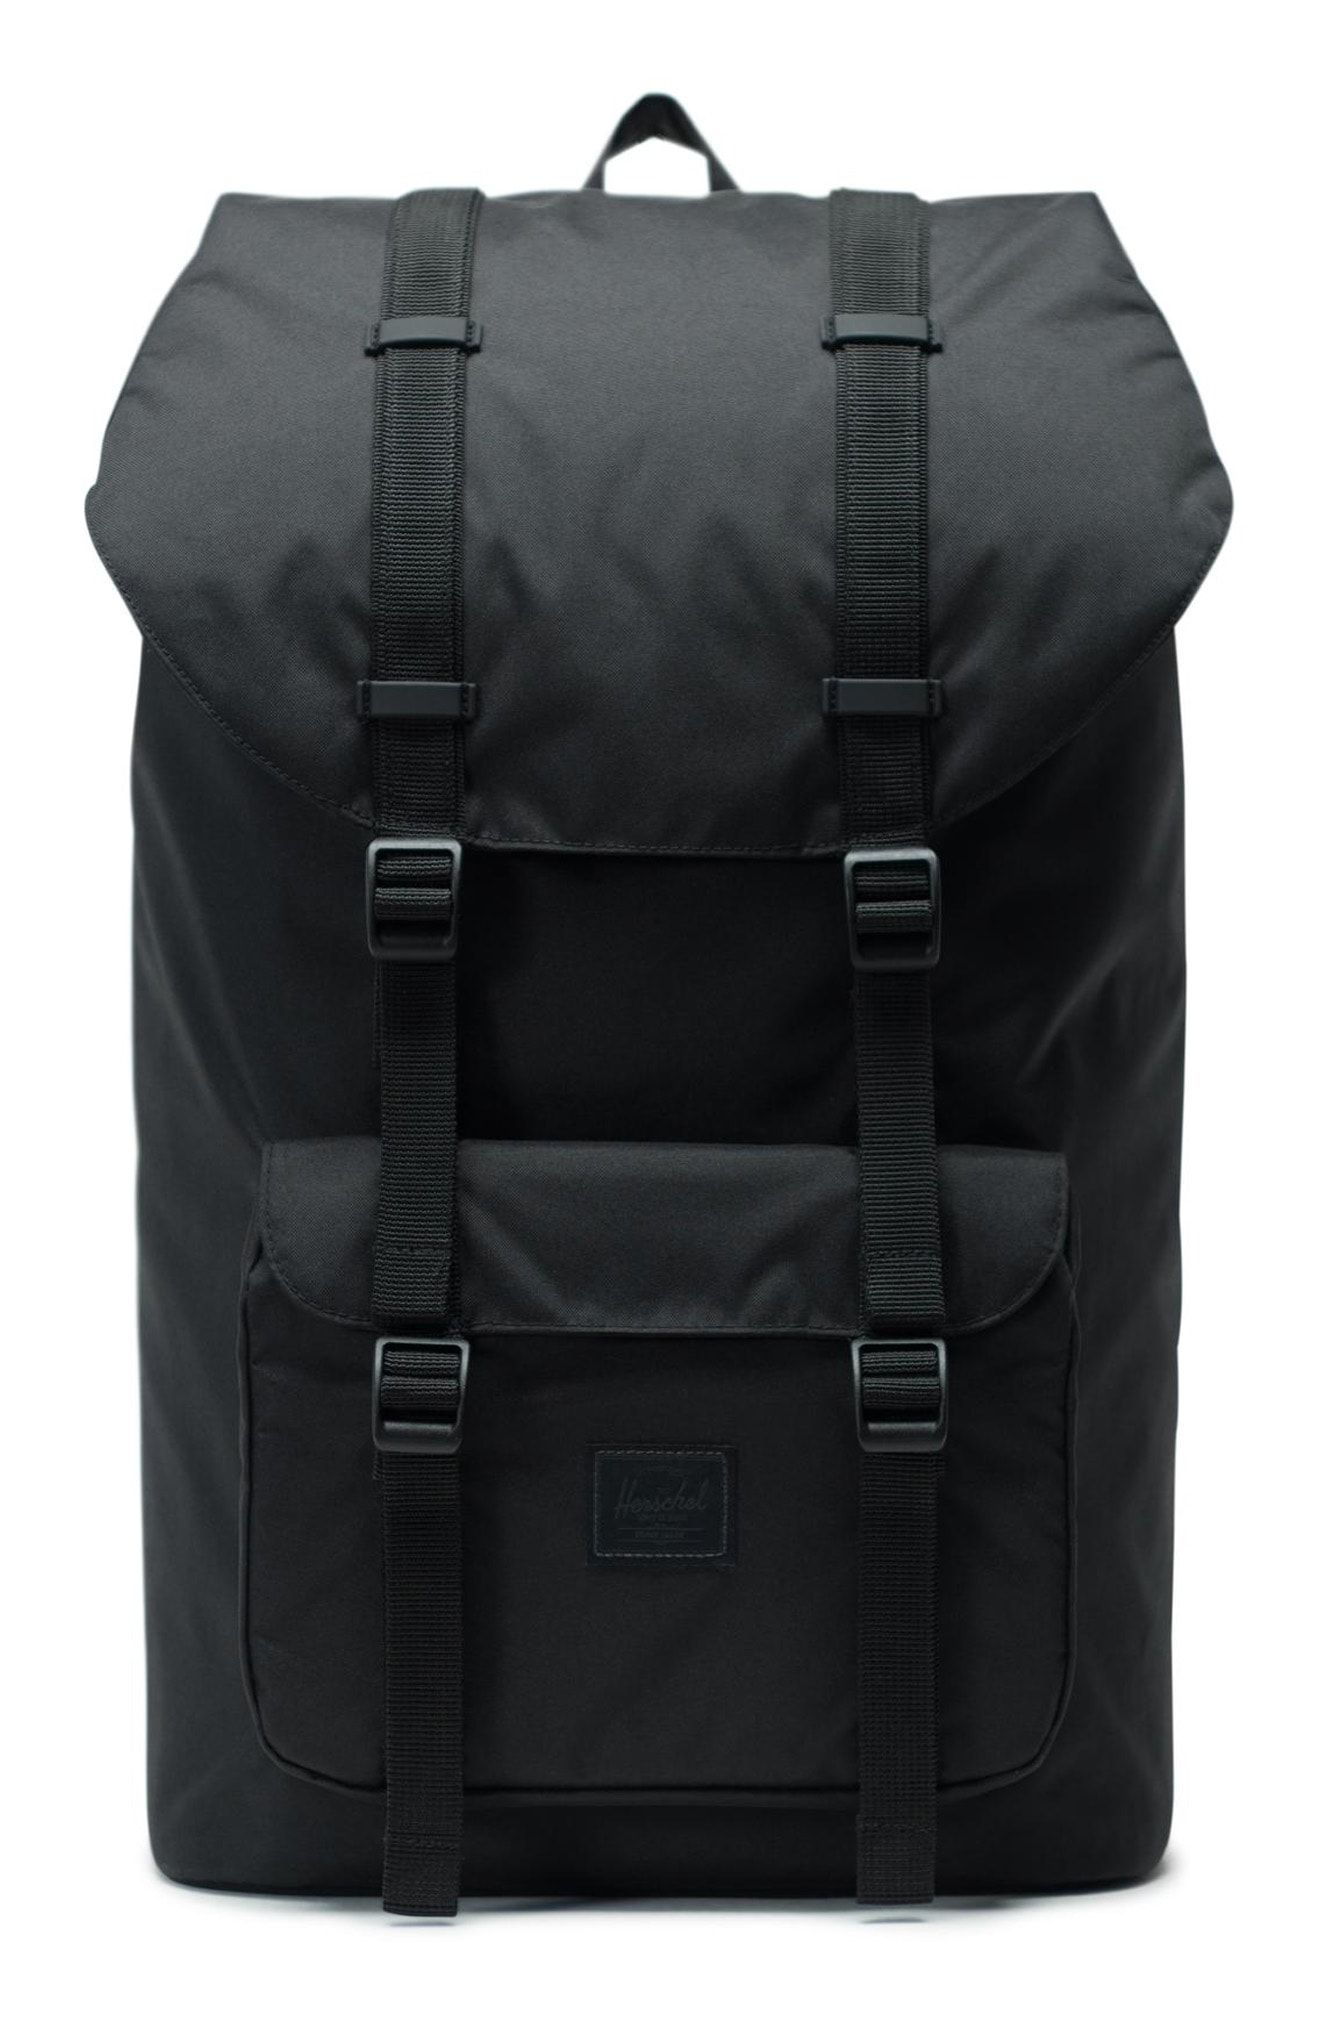 9d40313309 HERSCHEL SUPPLY CO. LITTLE AMERICA LIGHT BACKPACK - BLACK.  herschelsupplyco.   bags  backpacks